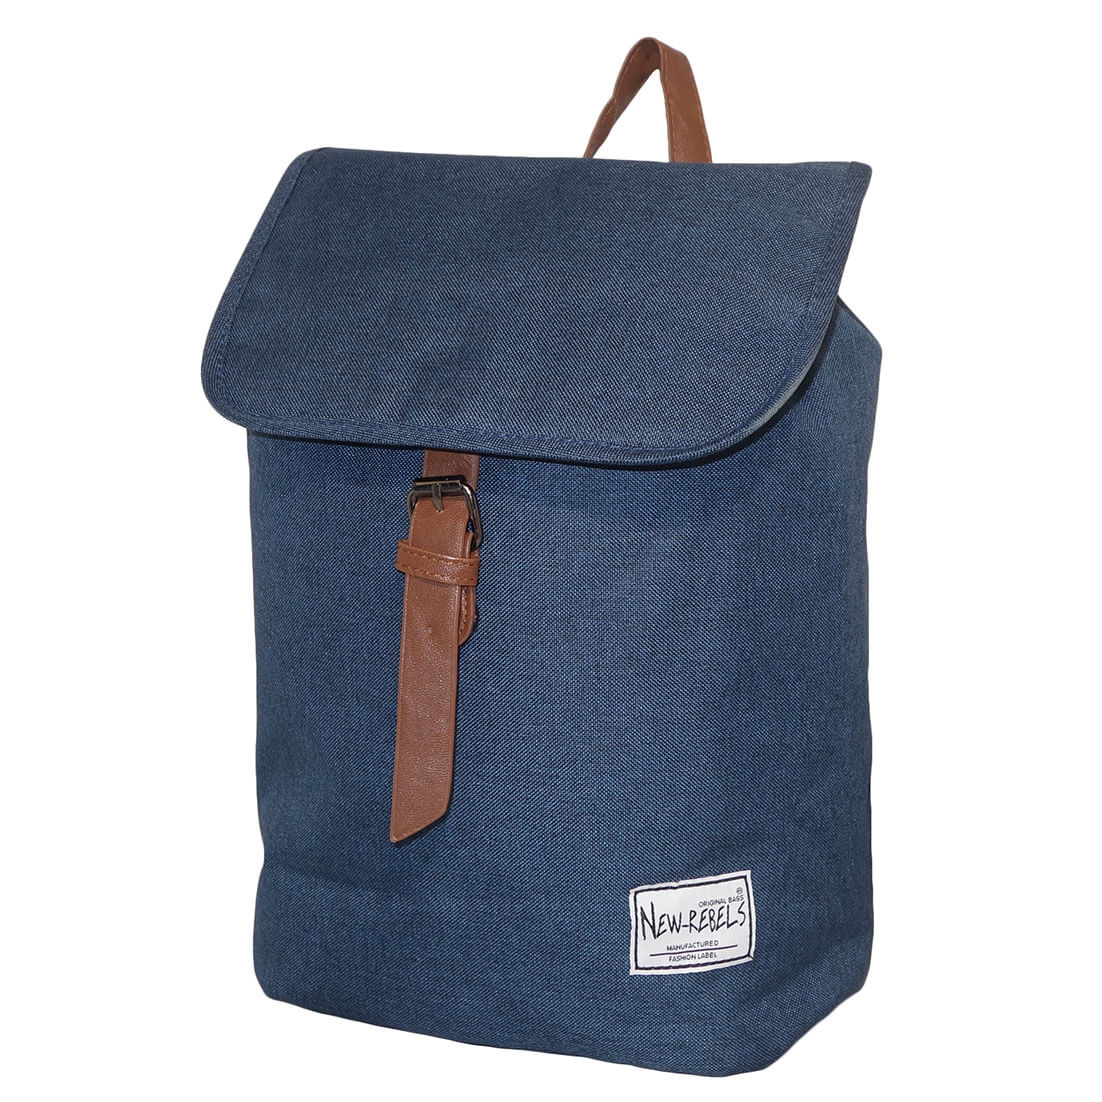 New Rebels Rugzak Basic Plus Blauw-0